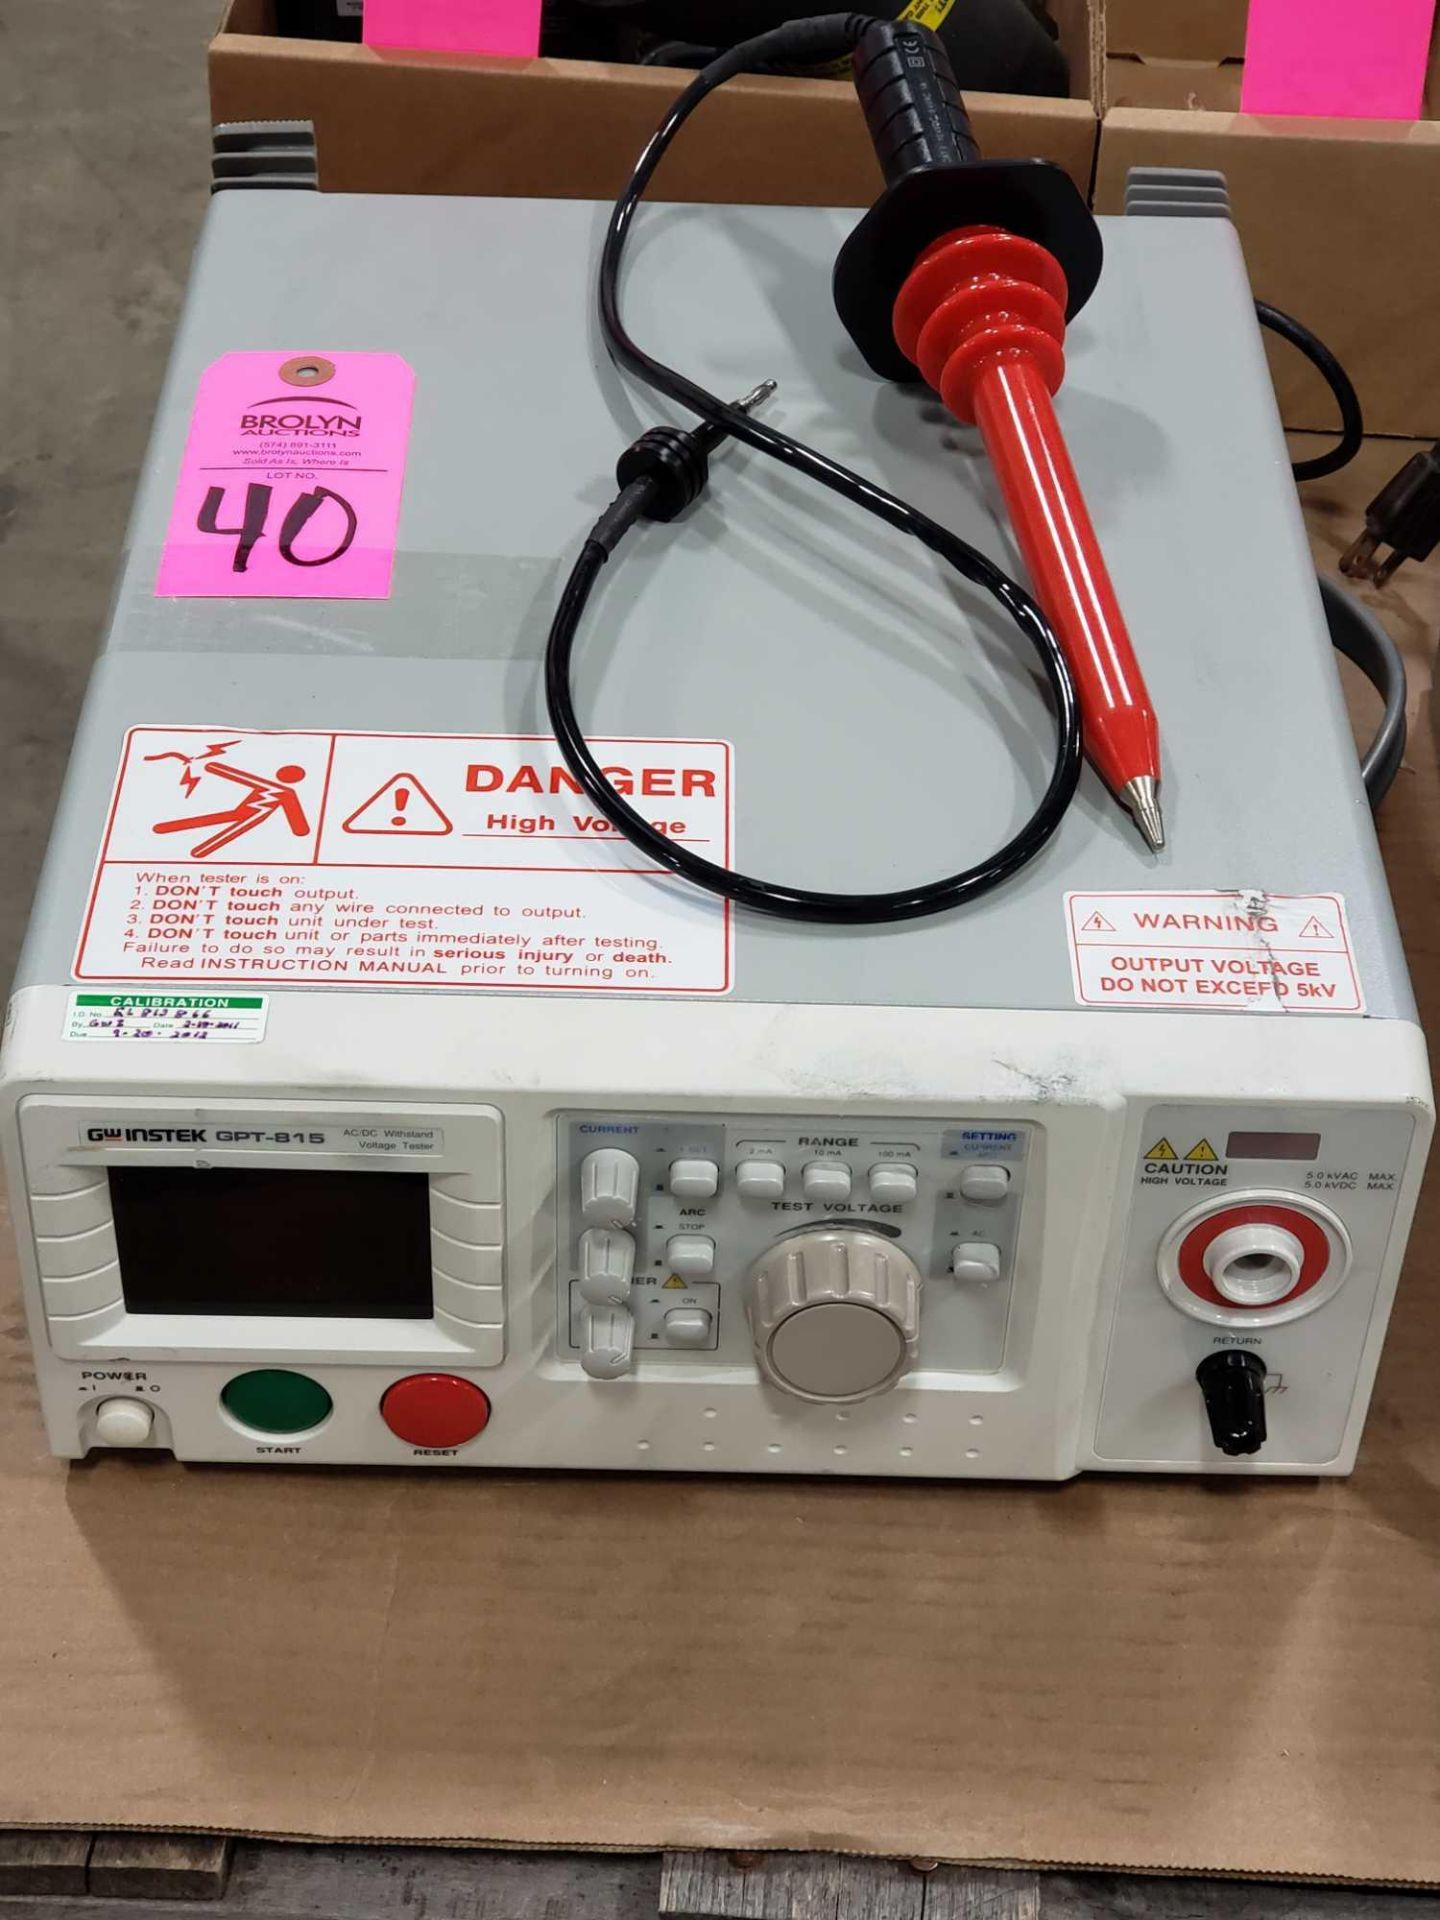 Lot 40 - GW Instek gpt-815 AC/DC voltage tester power analyzer with probe.